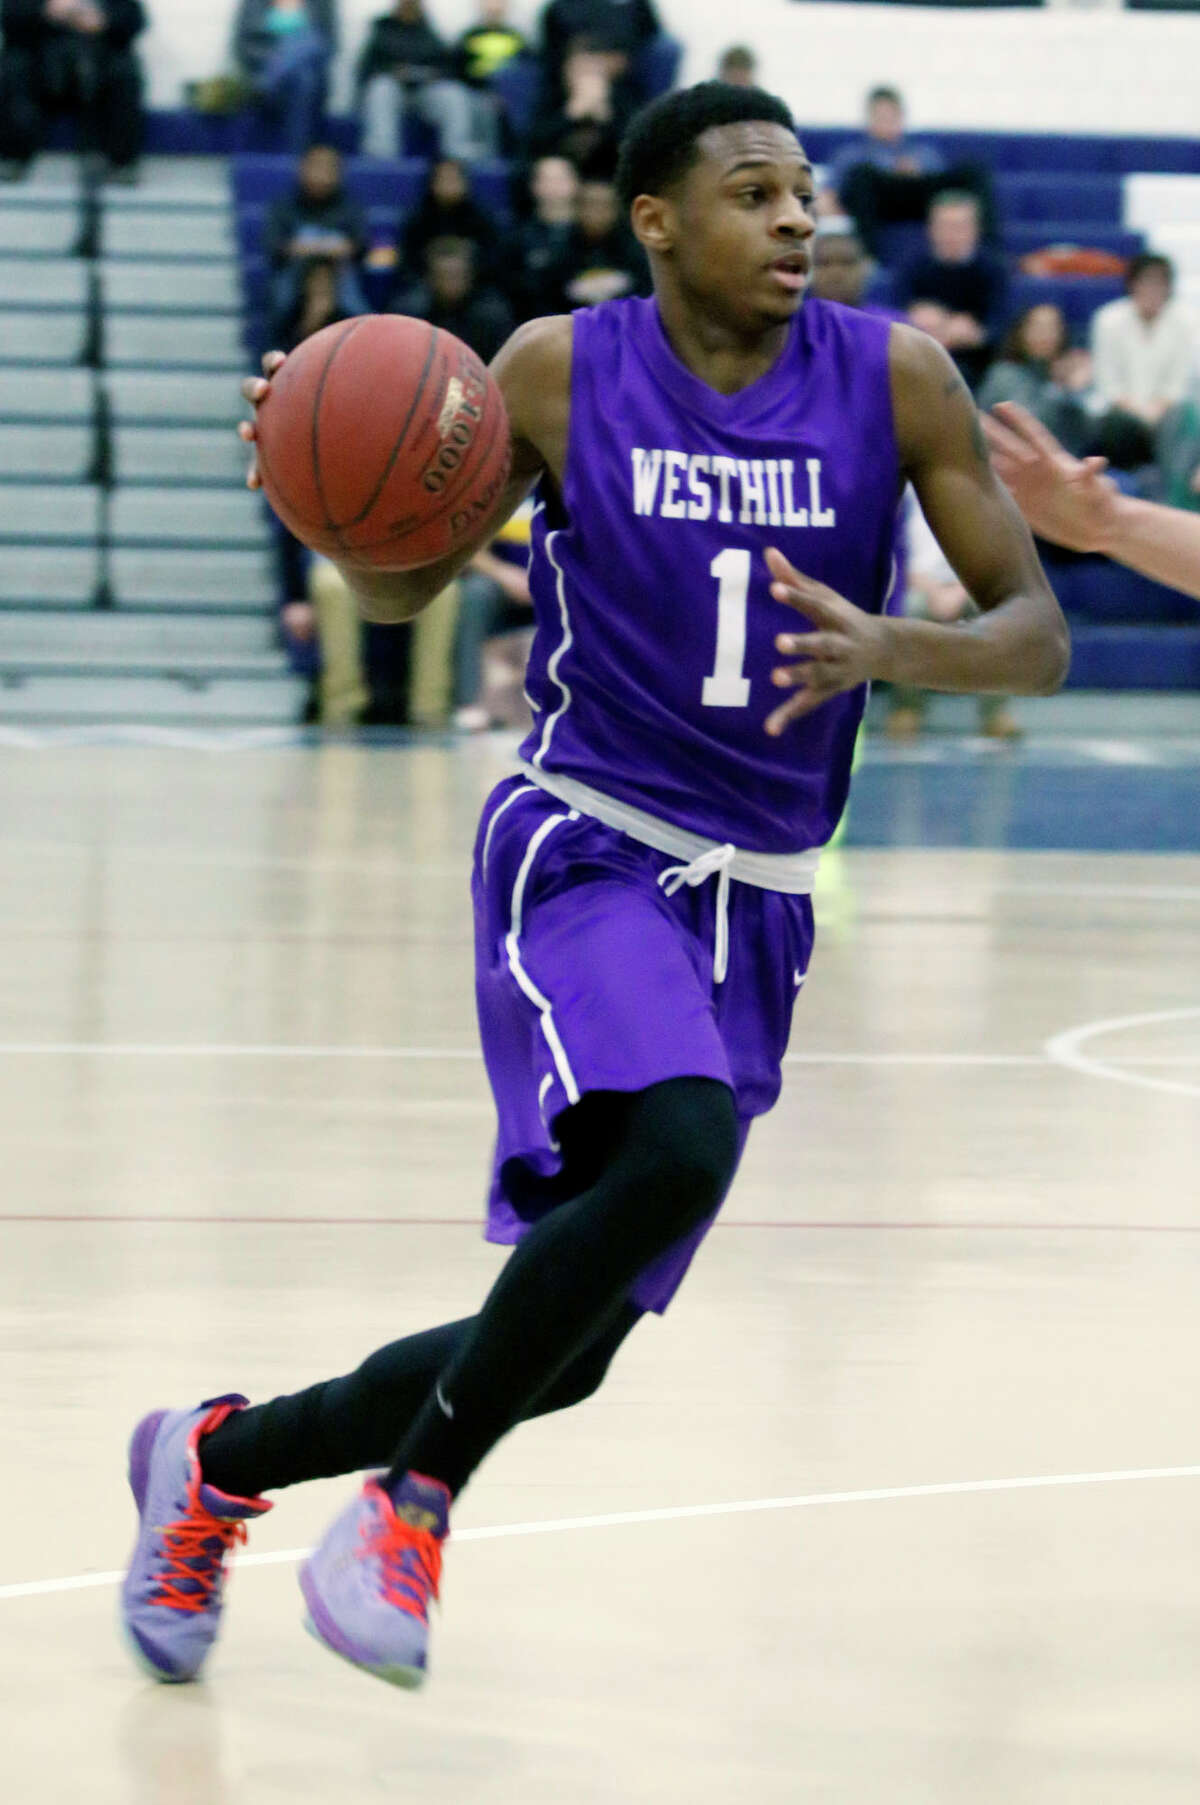 Westhill's Jeremiah Livingston drives to the basket during the Vikings' basketball game against Wilton at Wilton High School in Wilton, Conn., on Thursday, Jan. 22, 2015. Westhill won, 72-67.